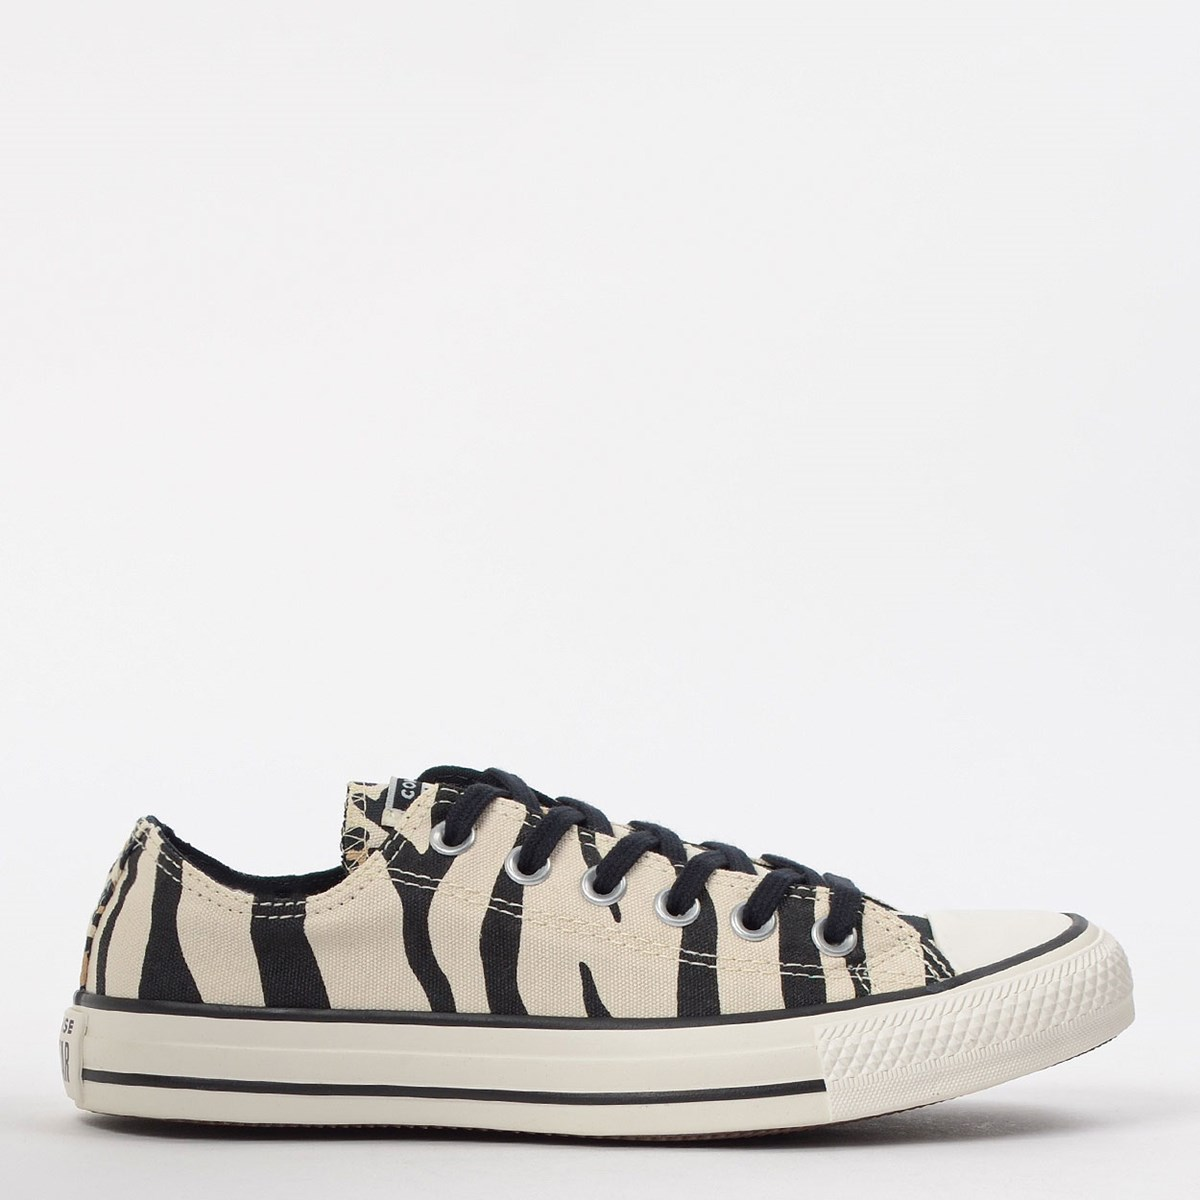 Tênis Converse Chuck Taylor All Star Animal Print Ox Bege Preto CT13610001